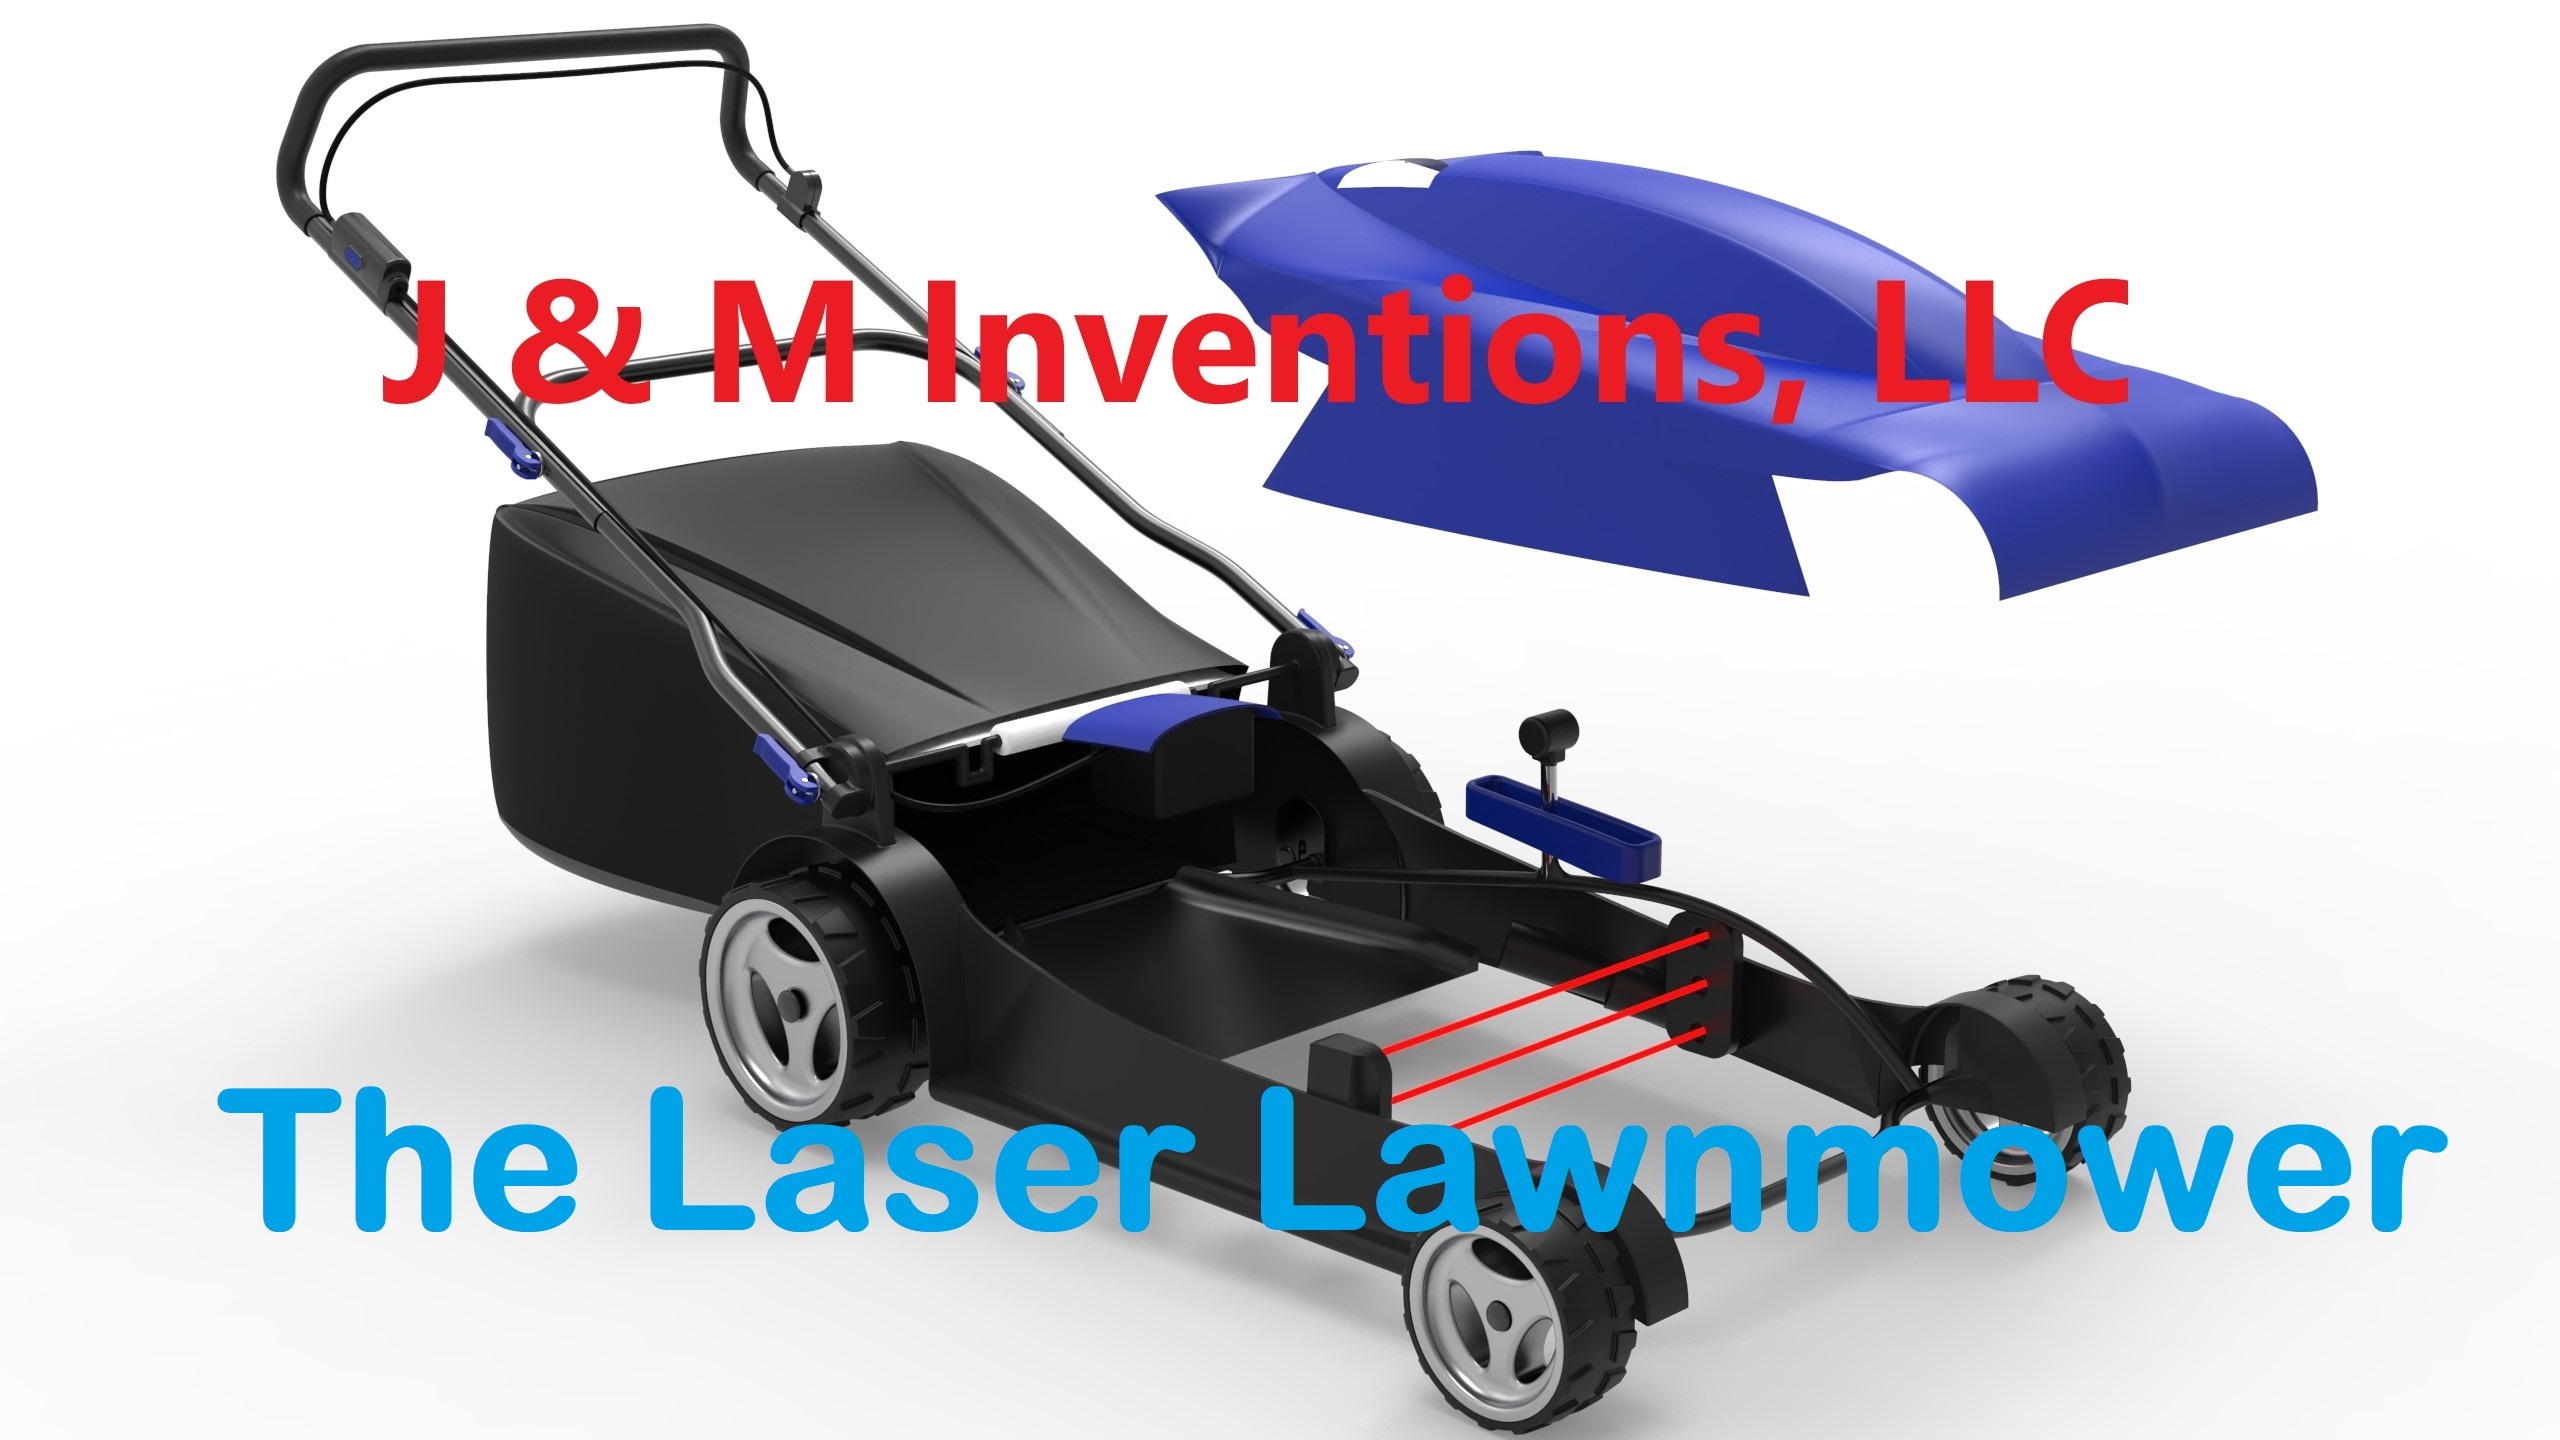 J & M Inventions Launches Laser Lawnmower in a Crowdfunding Campaign to Replace the Classic Lawnmower